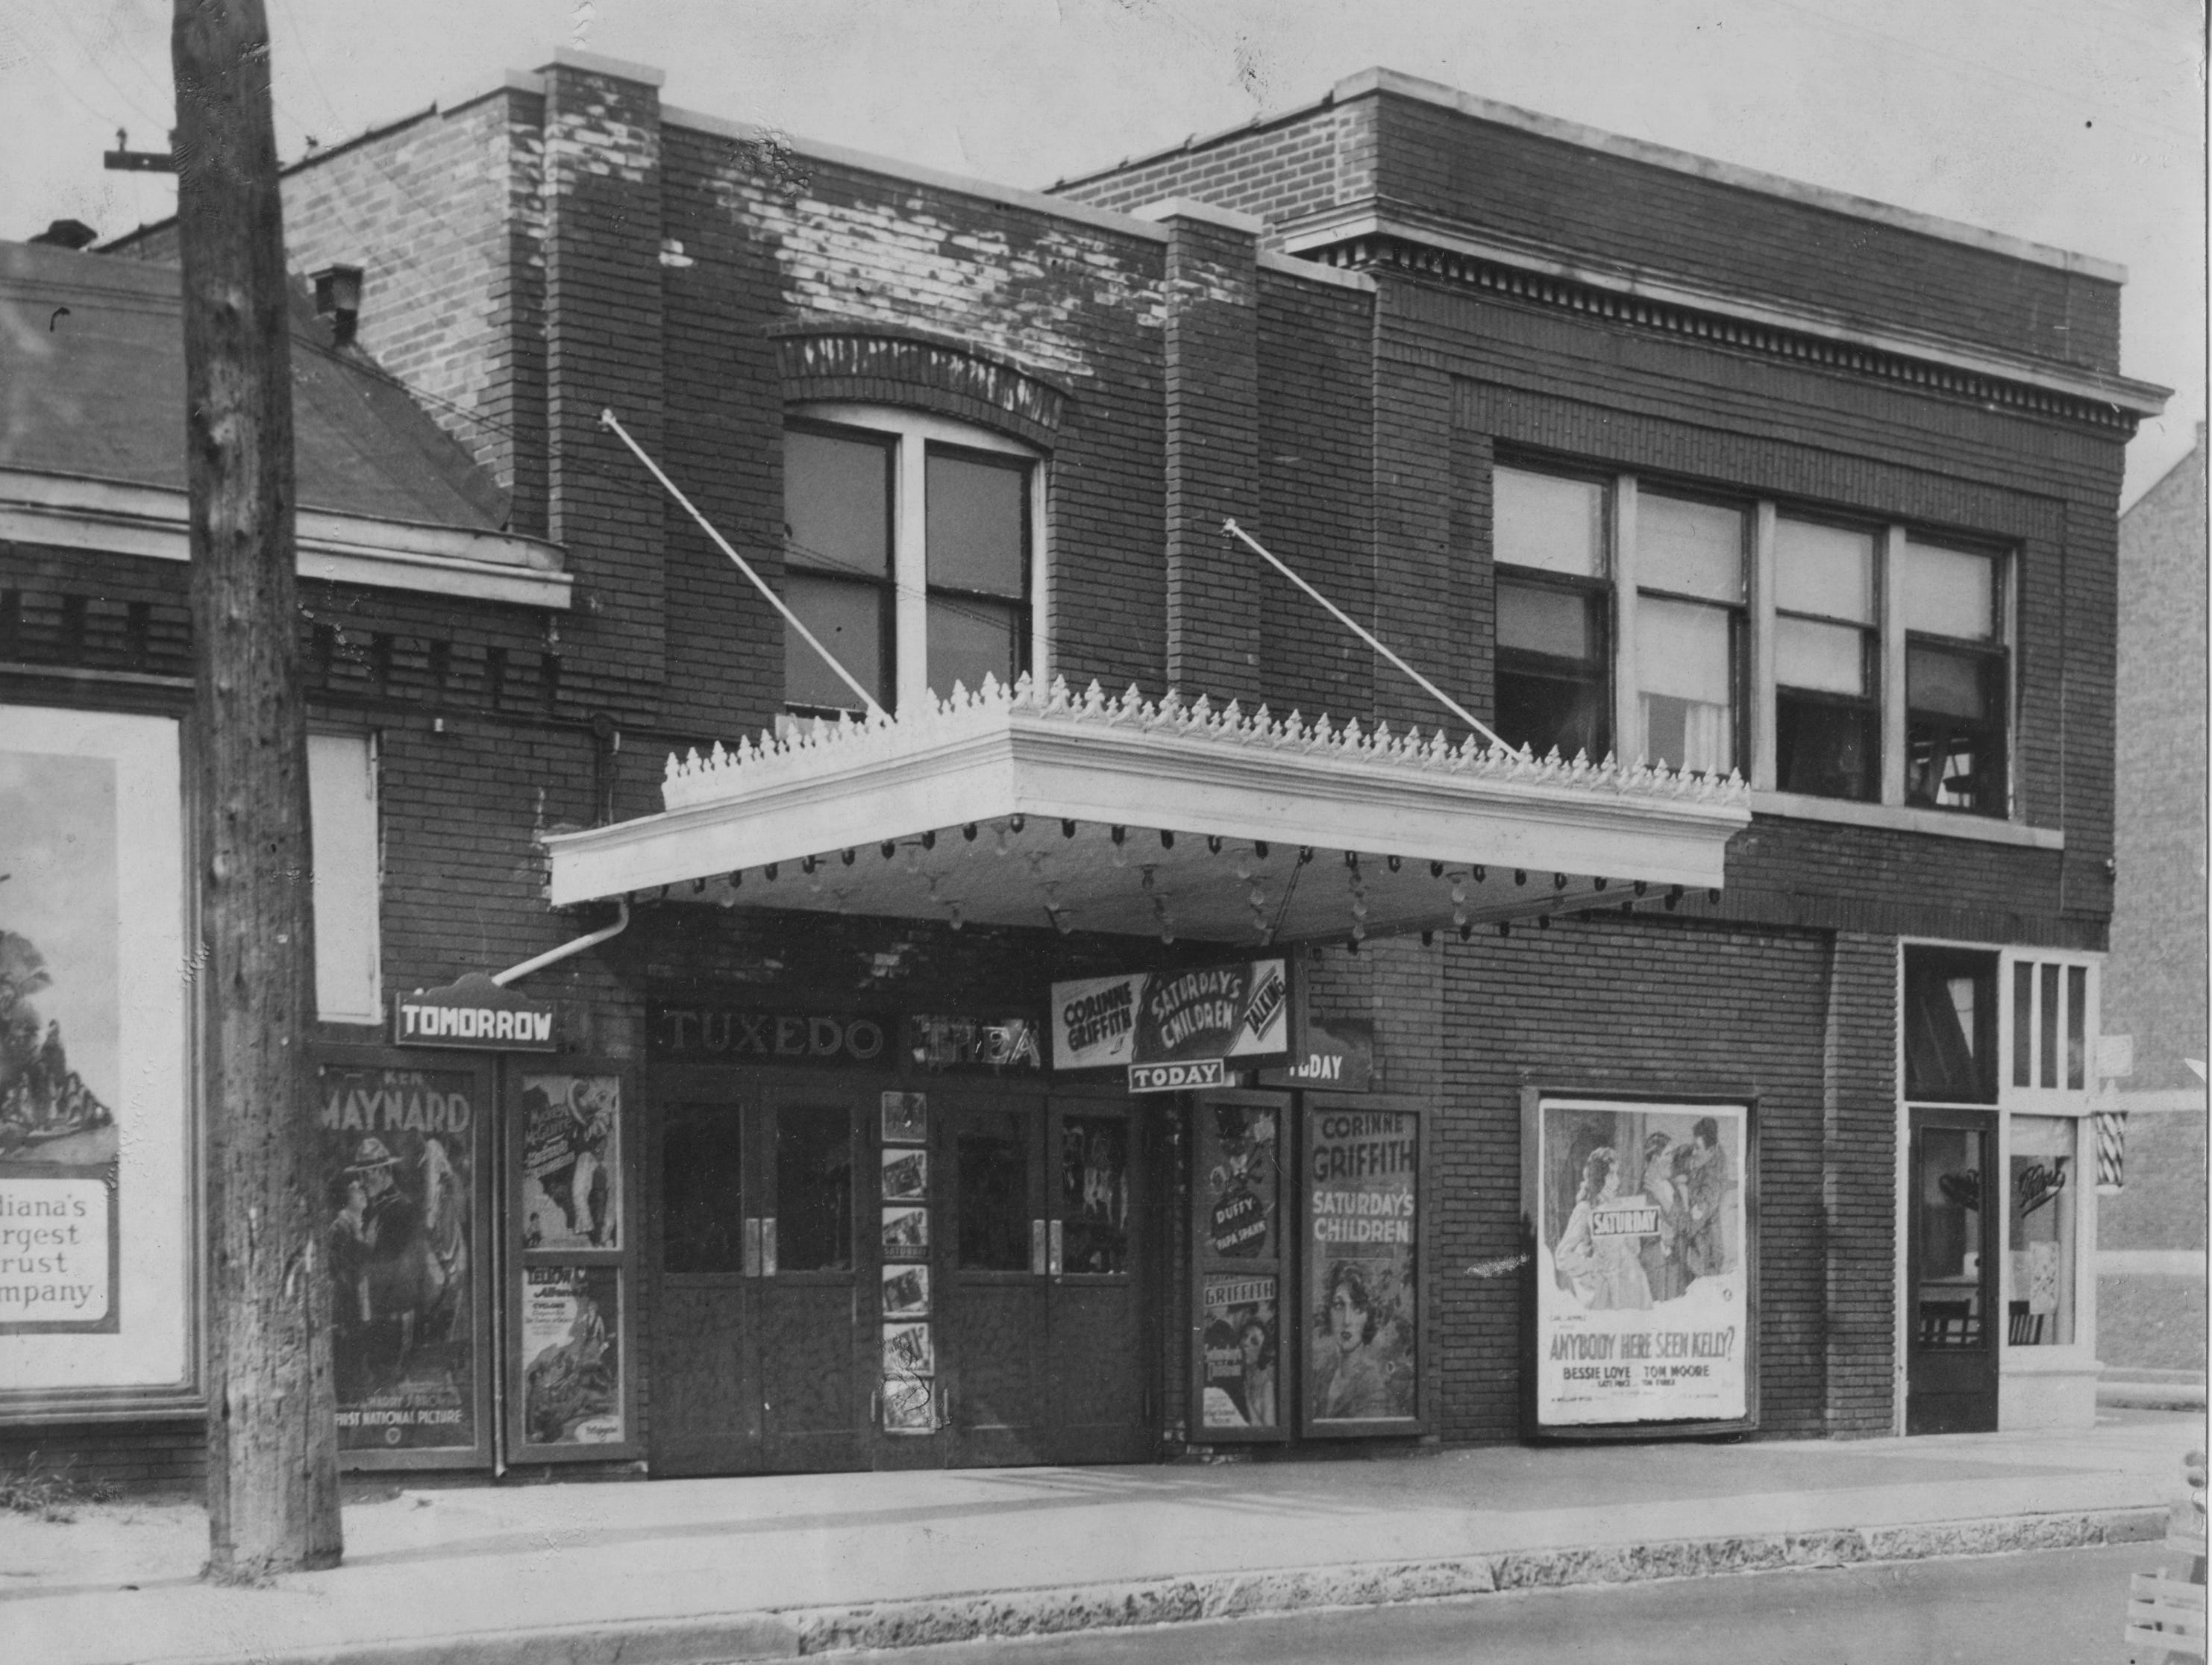 Exterior of Tuxedo Theater opened in 1916 at 4020 E. New York Street and closed its doors in 1957.